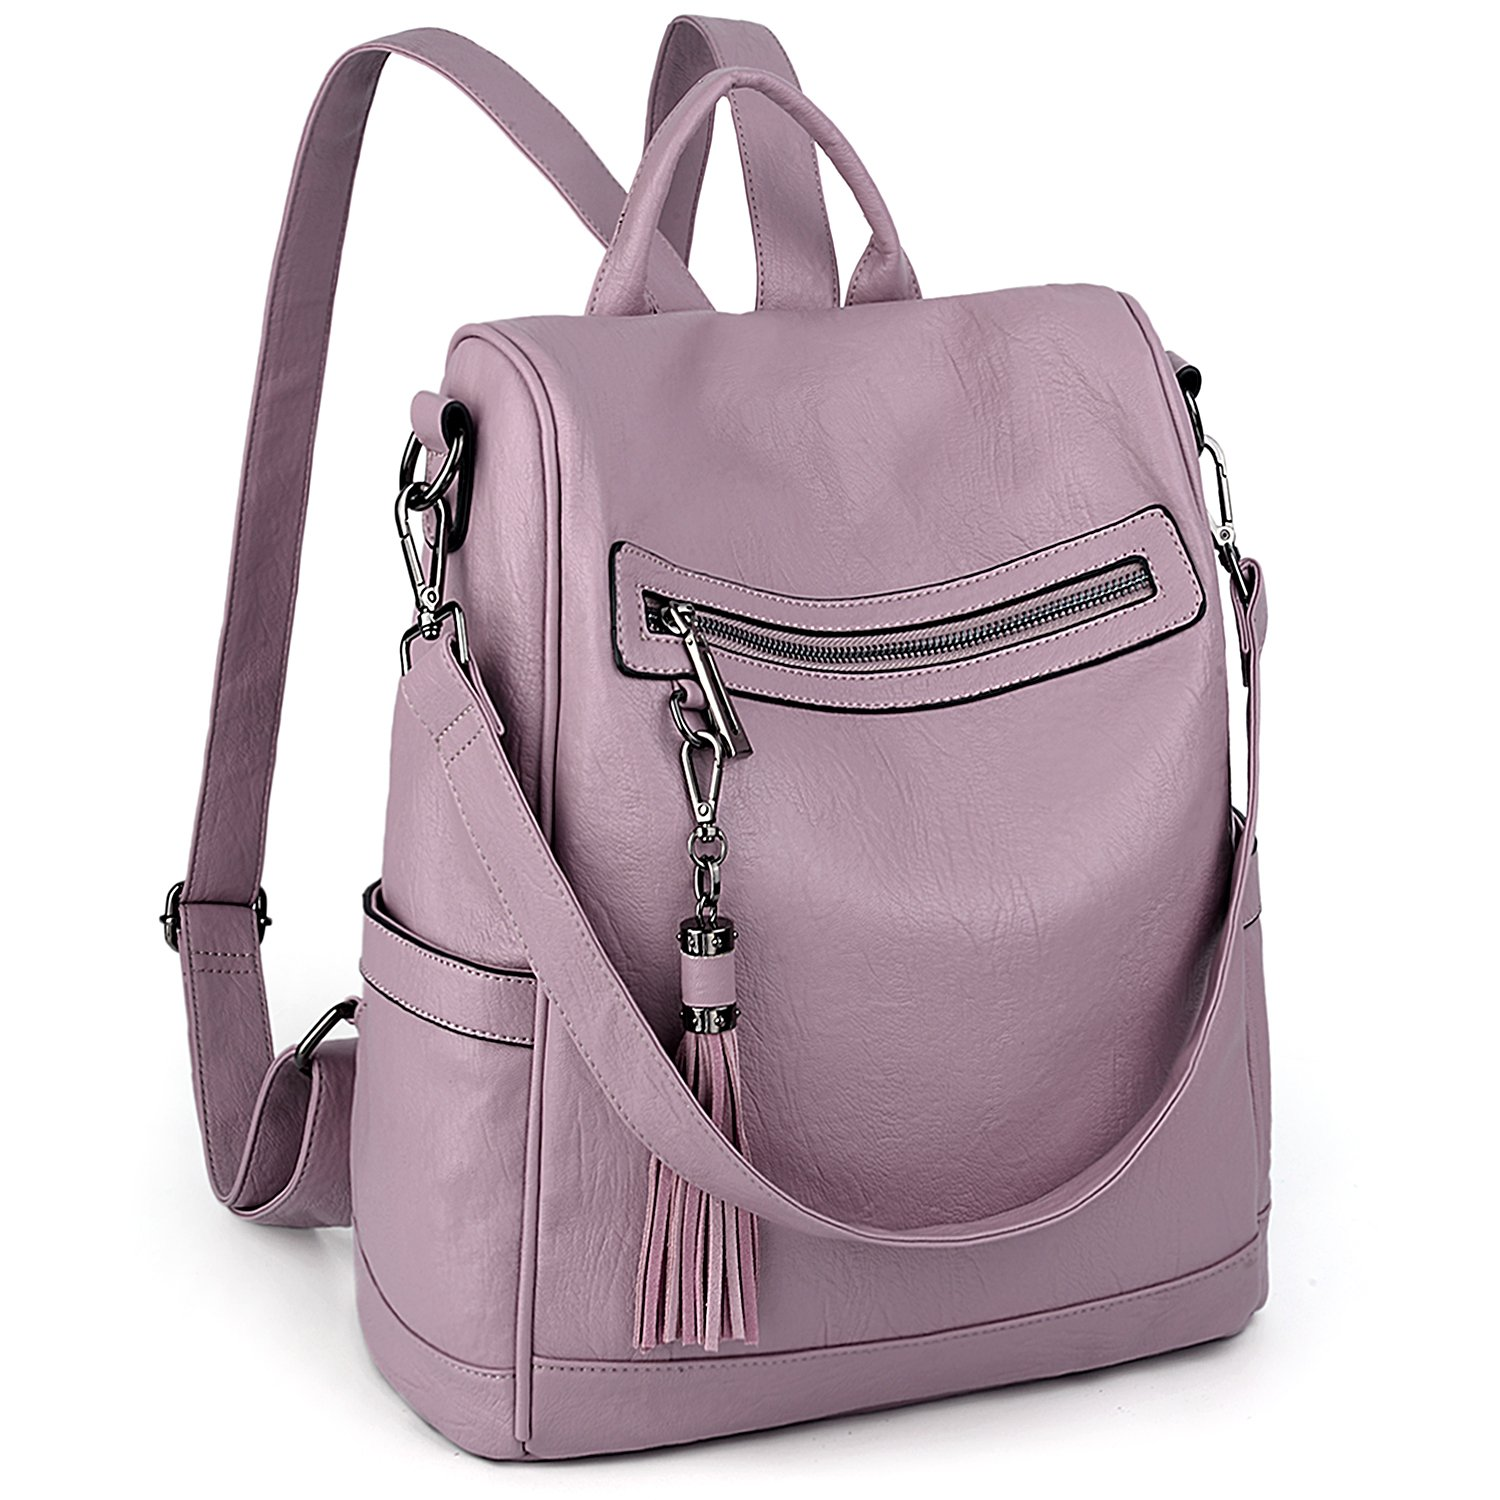 UTO Women Anti-Theft Backpack Purse PU Washed Leather Ladies Tassels Convertible Rucksack Shoulder Bag Lavender